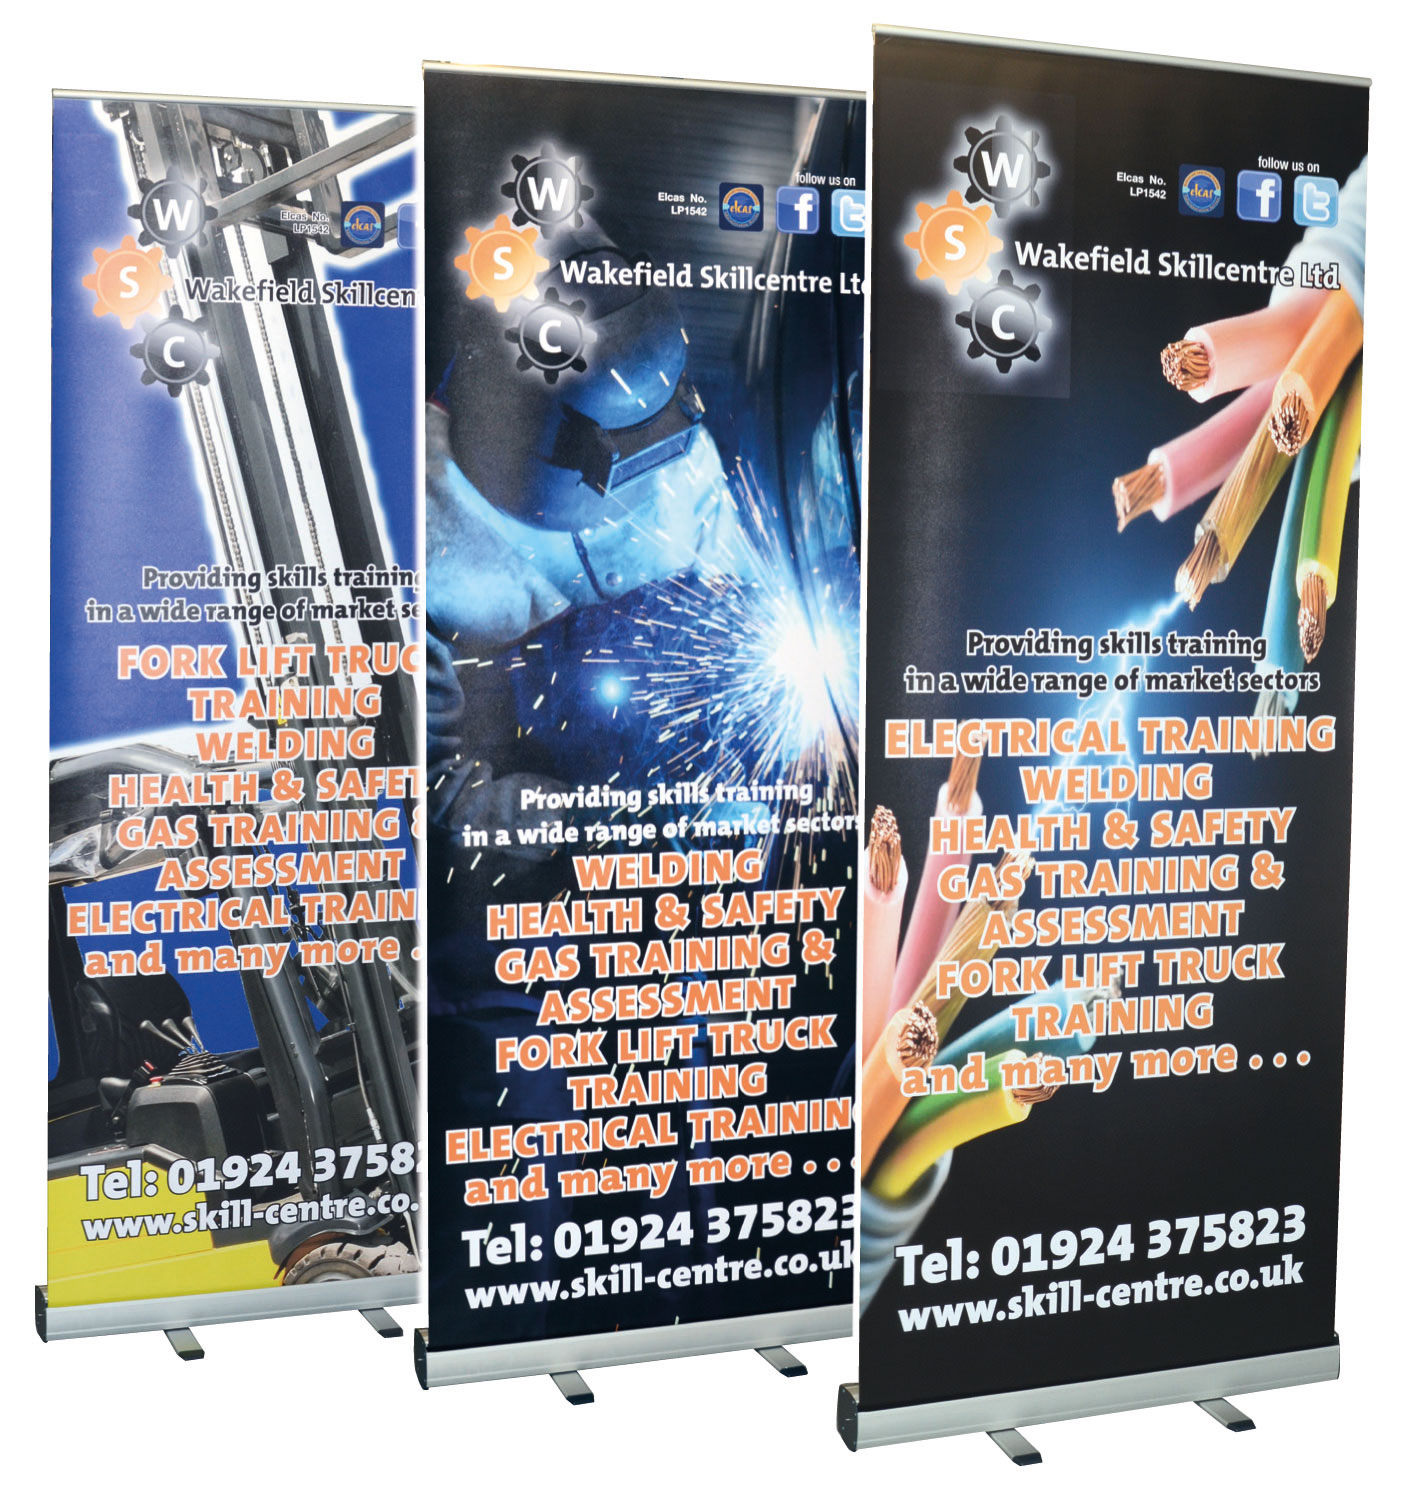 Pull up or pop up banners ideal for shows and fayres, trade stands etc. designed and manufactured nr Lincolnshire